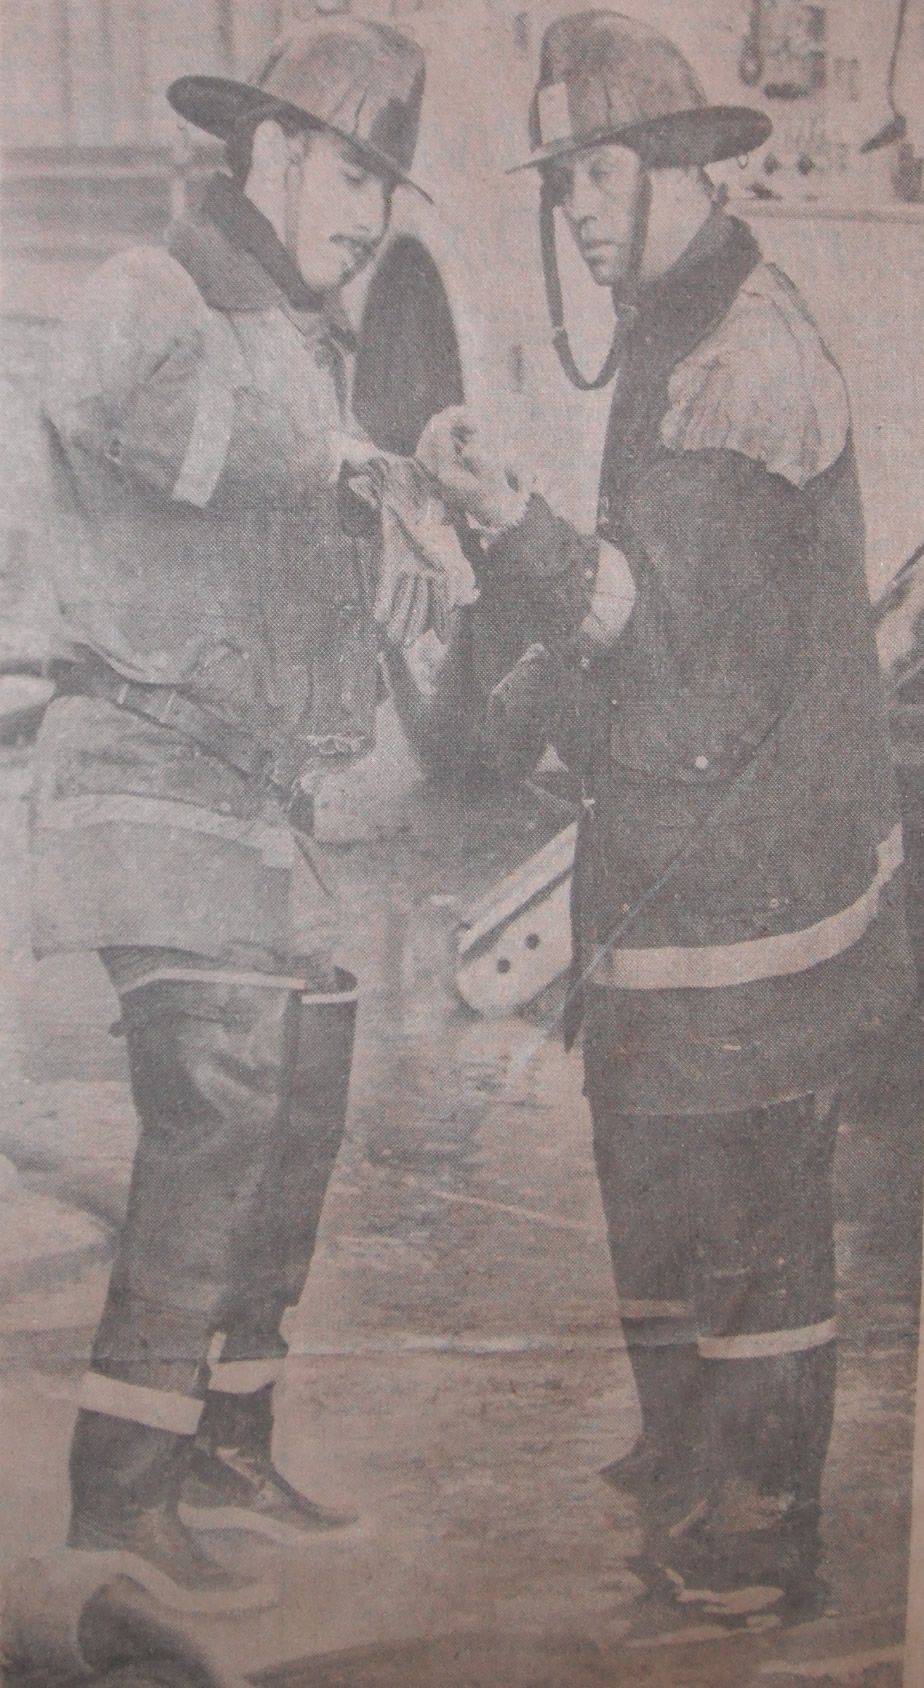 London Firemen Morley Hanes, left, and Don Varey stop for a moment to attend to an injury to Mr. Varey's hand. (photo by Rick Eglington of The London Free Press)